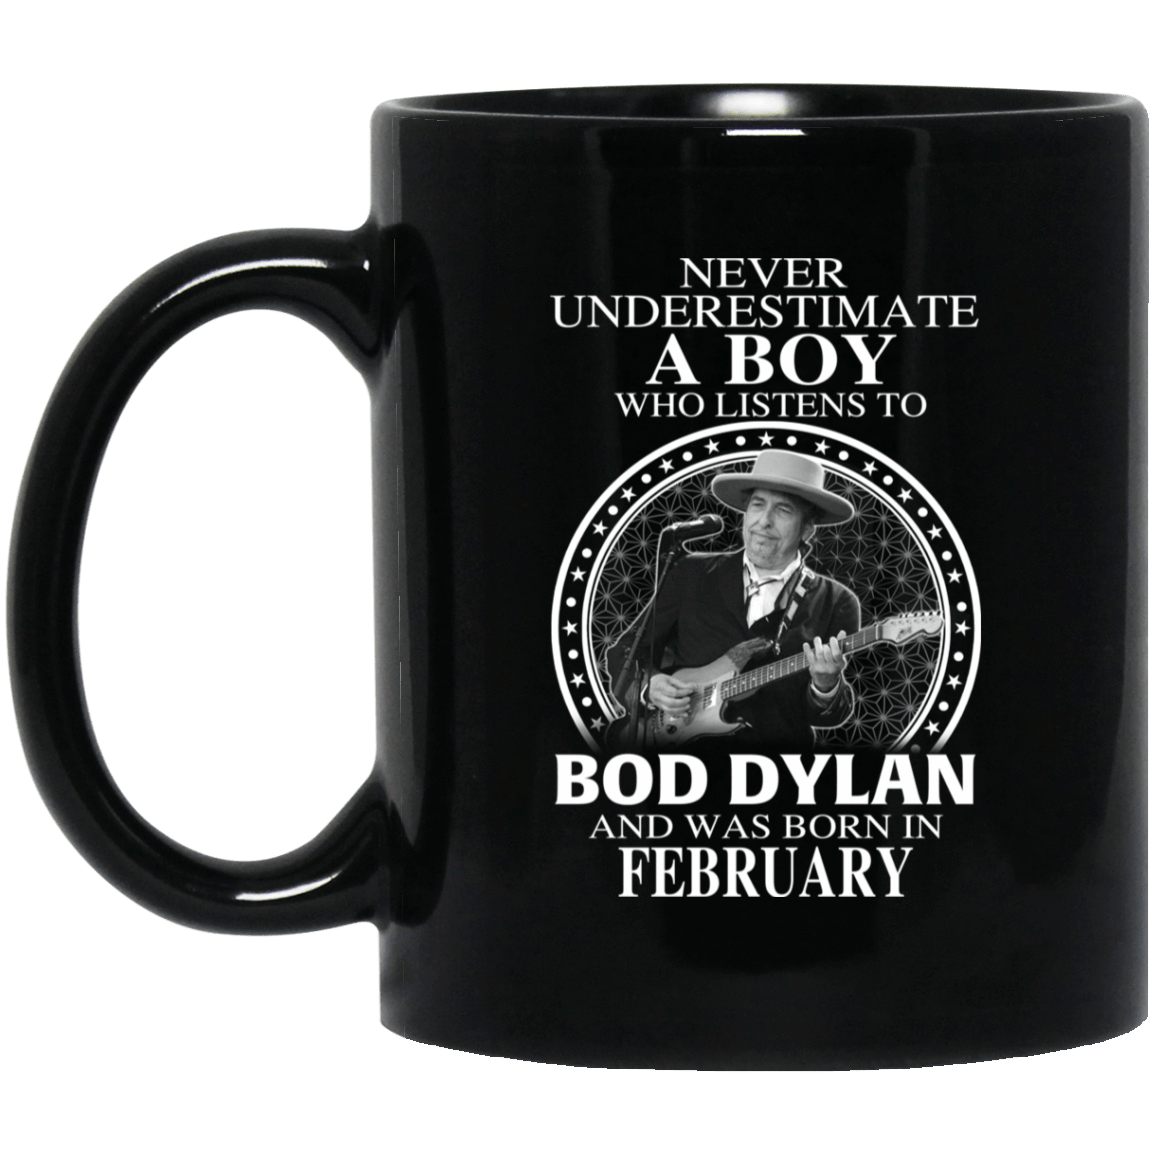 A Boy Who Listens To Bob Dylan And Was Born In February Mug 1065-10181-76153796-49307 - Tee Ript